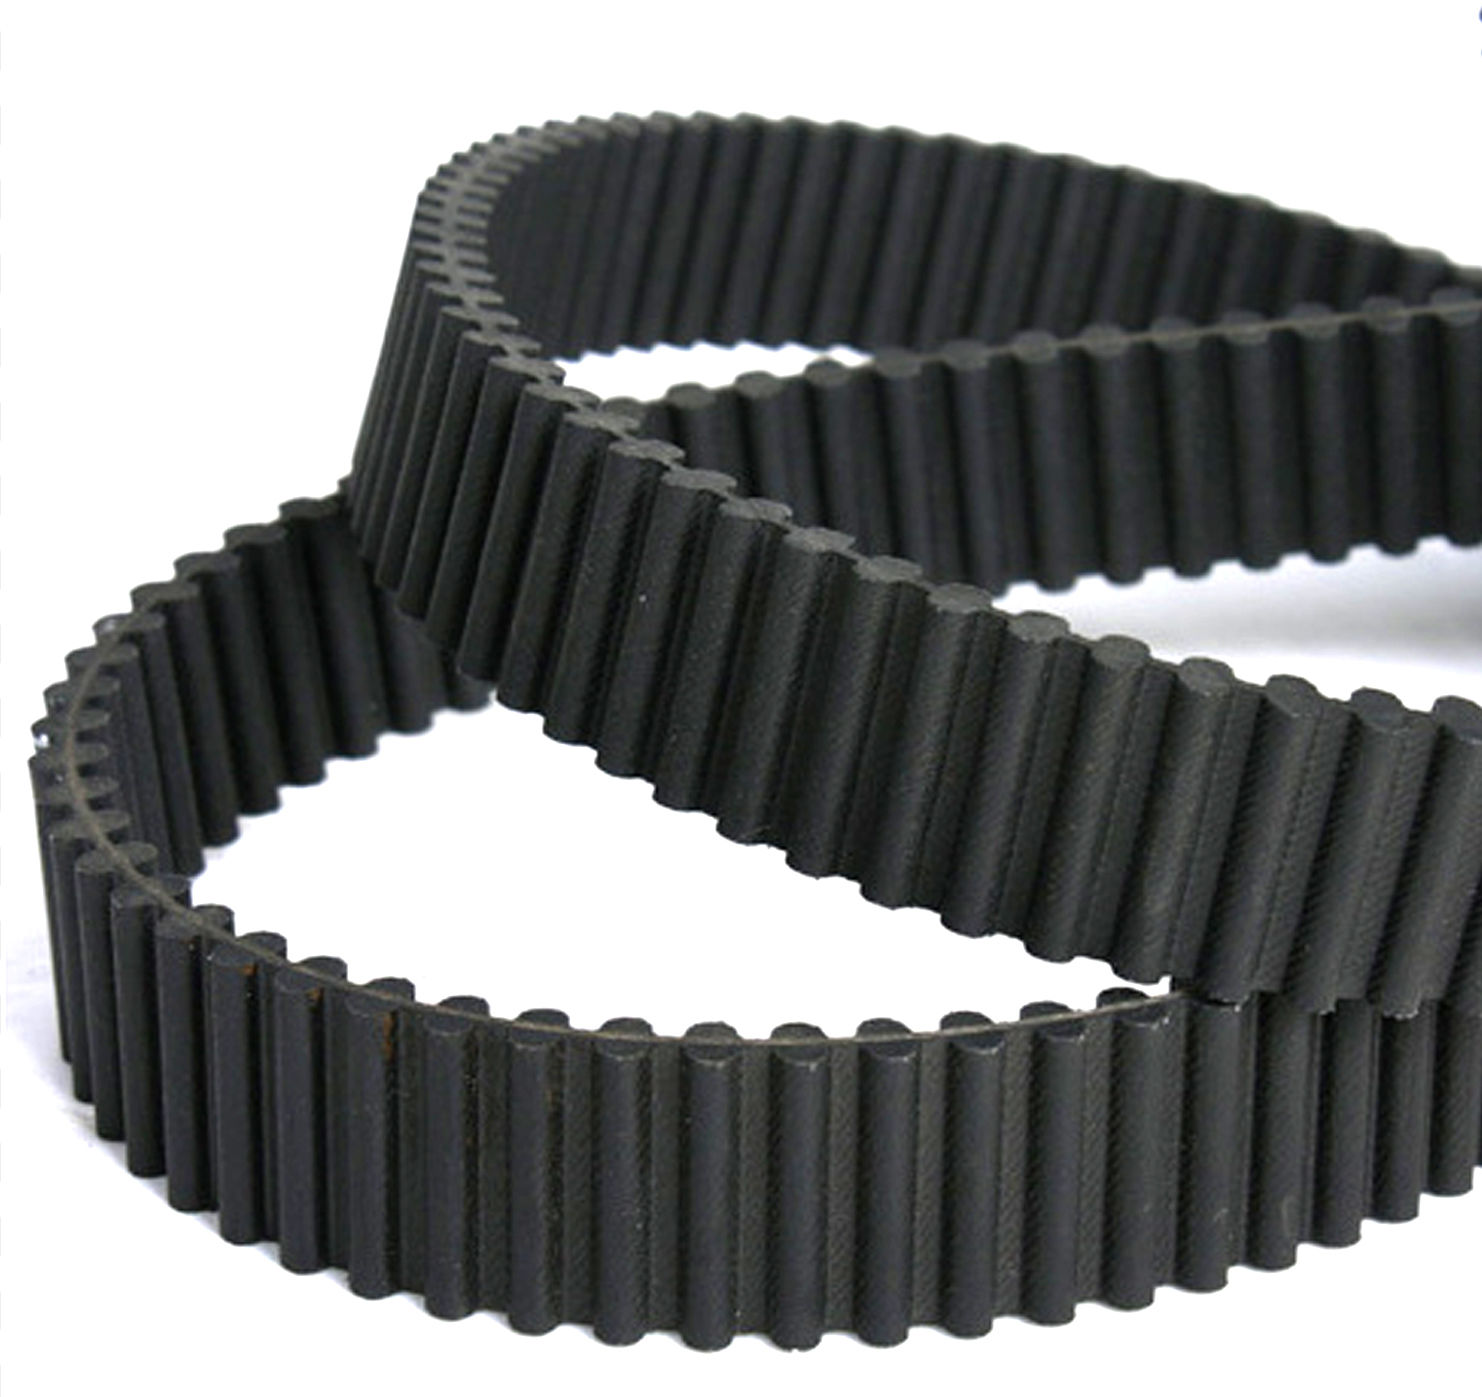 DAS8M 2000MM LONG 30MM WIDE 250 TOOTHED DOUBLE SIDE TIMING BELT